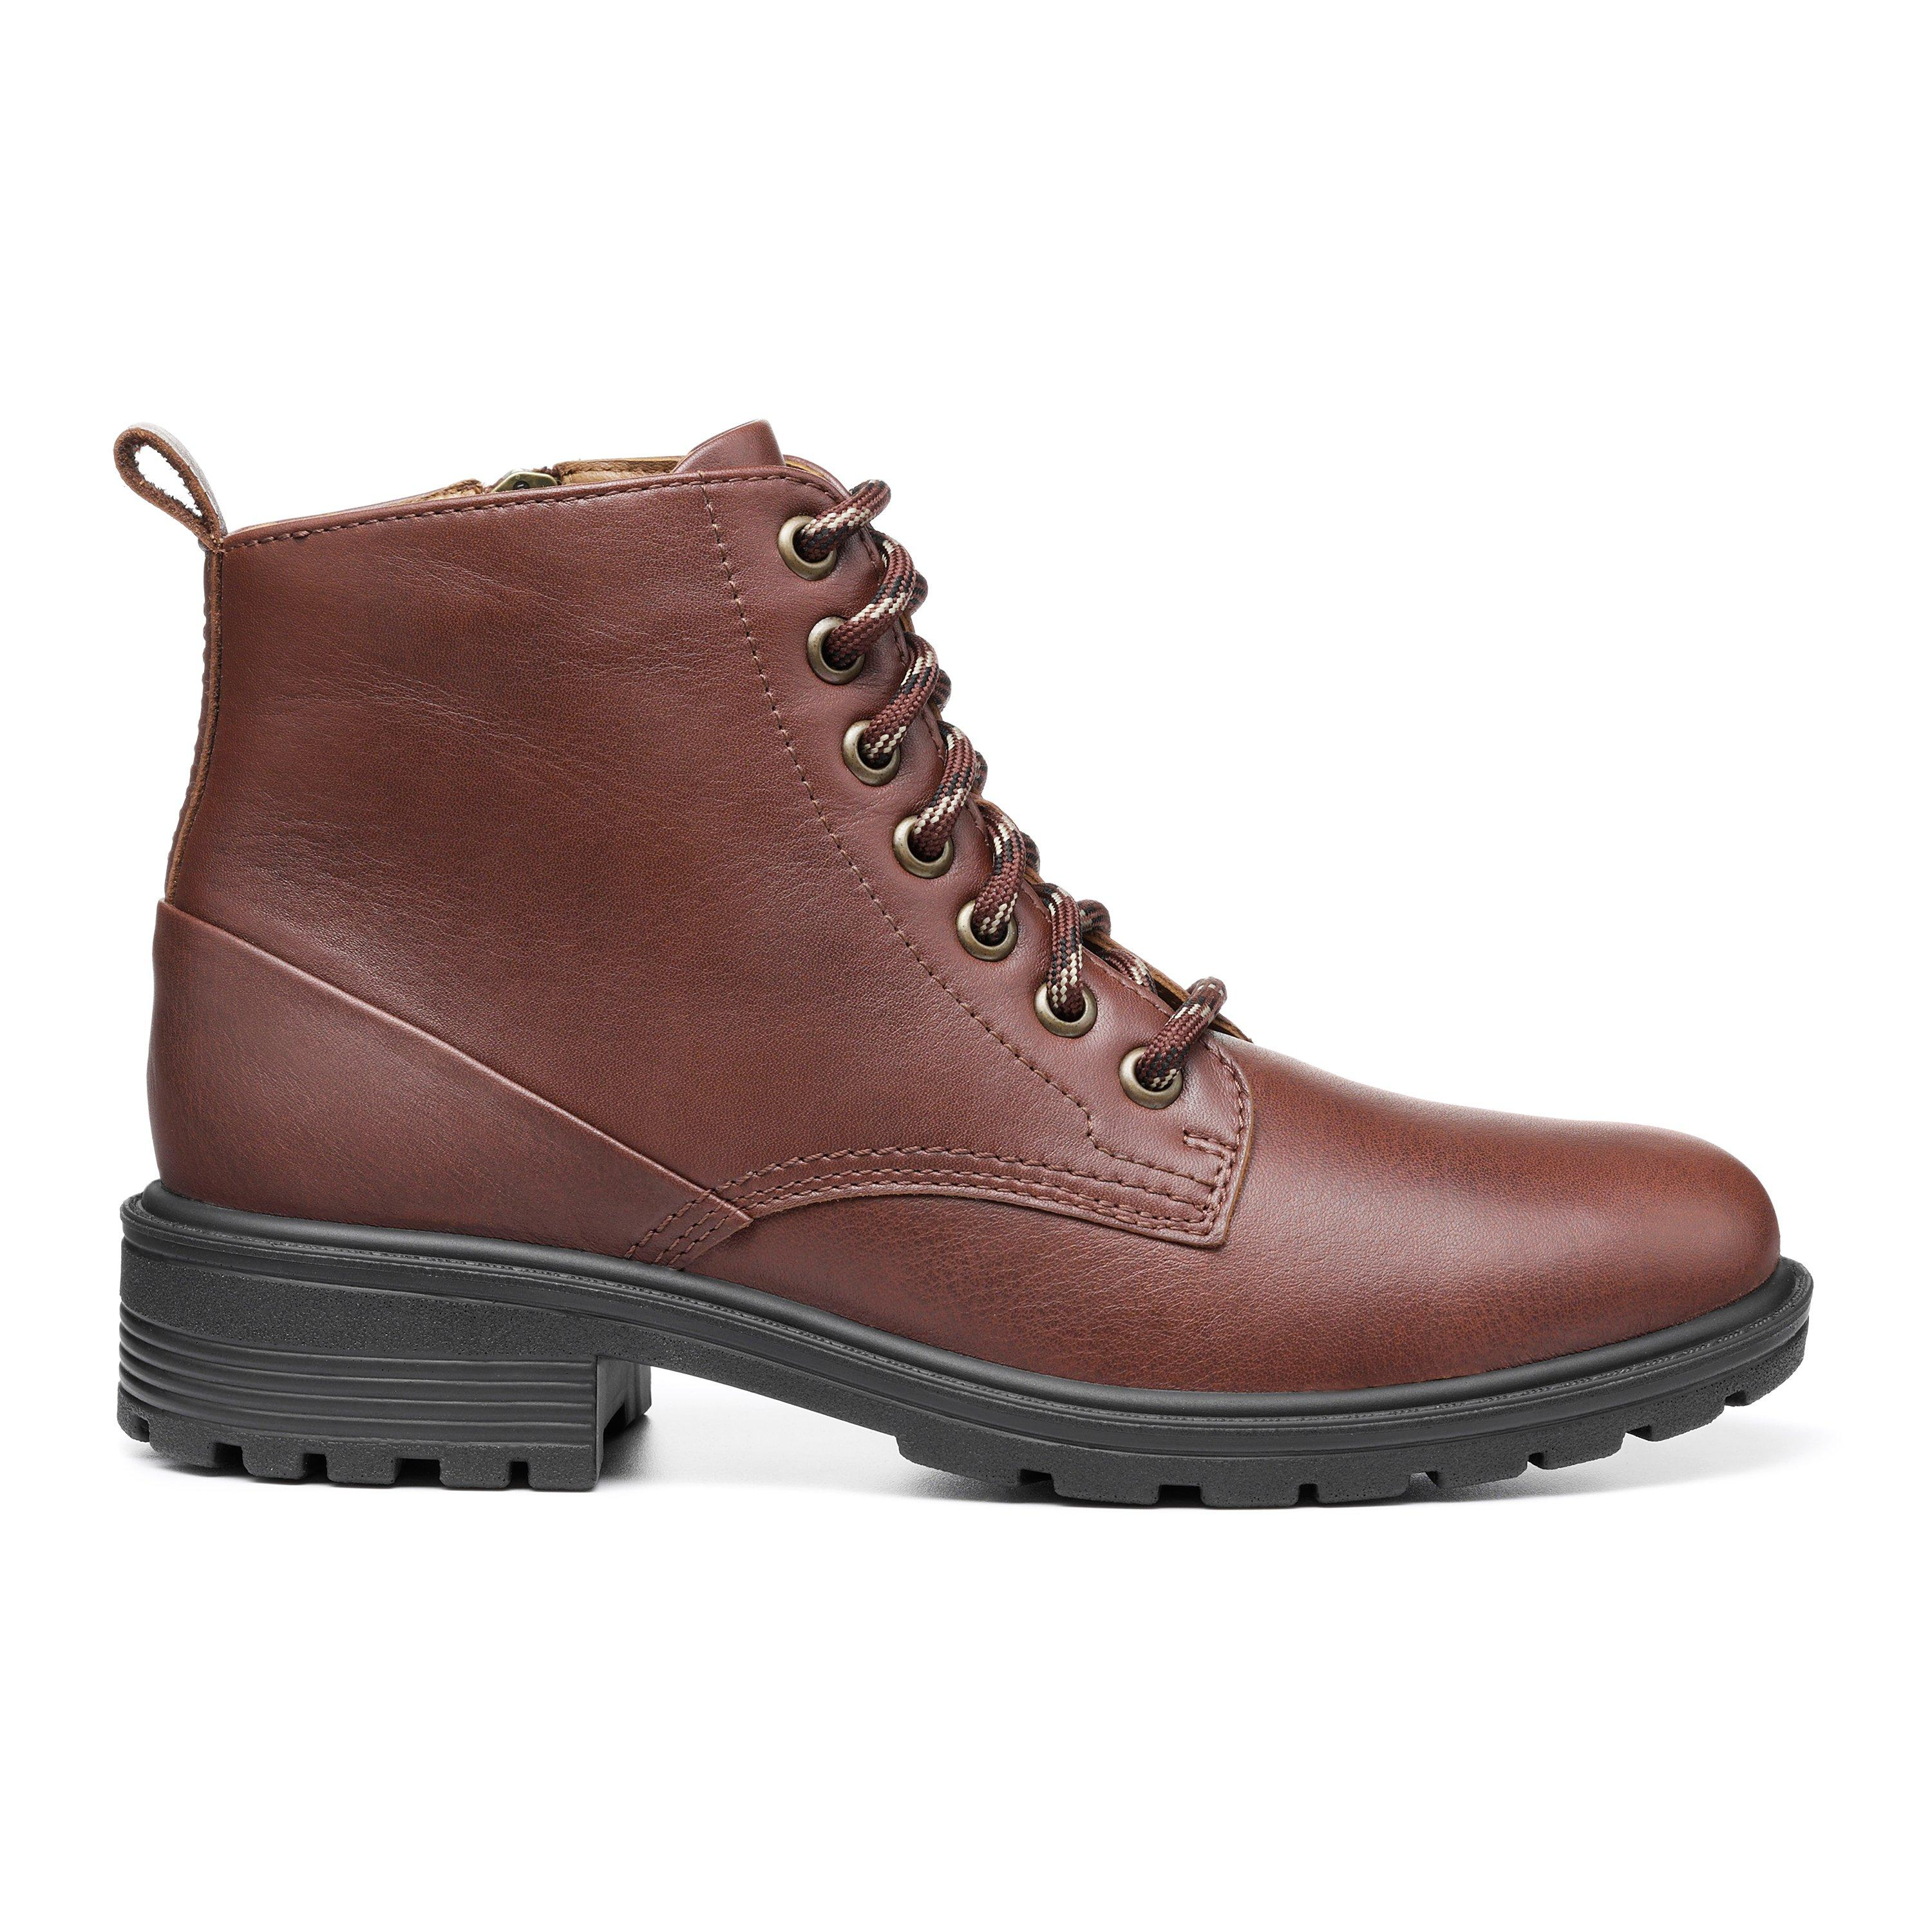 Vintage Winter Retro Boots – Snow, Rain, Cold Clarence Boots - Mahogany Standard Fit 11 $179.00 AT vintagedancer.com